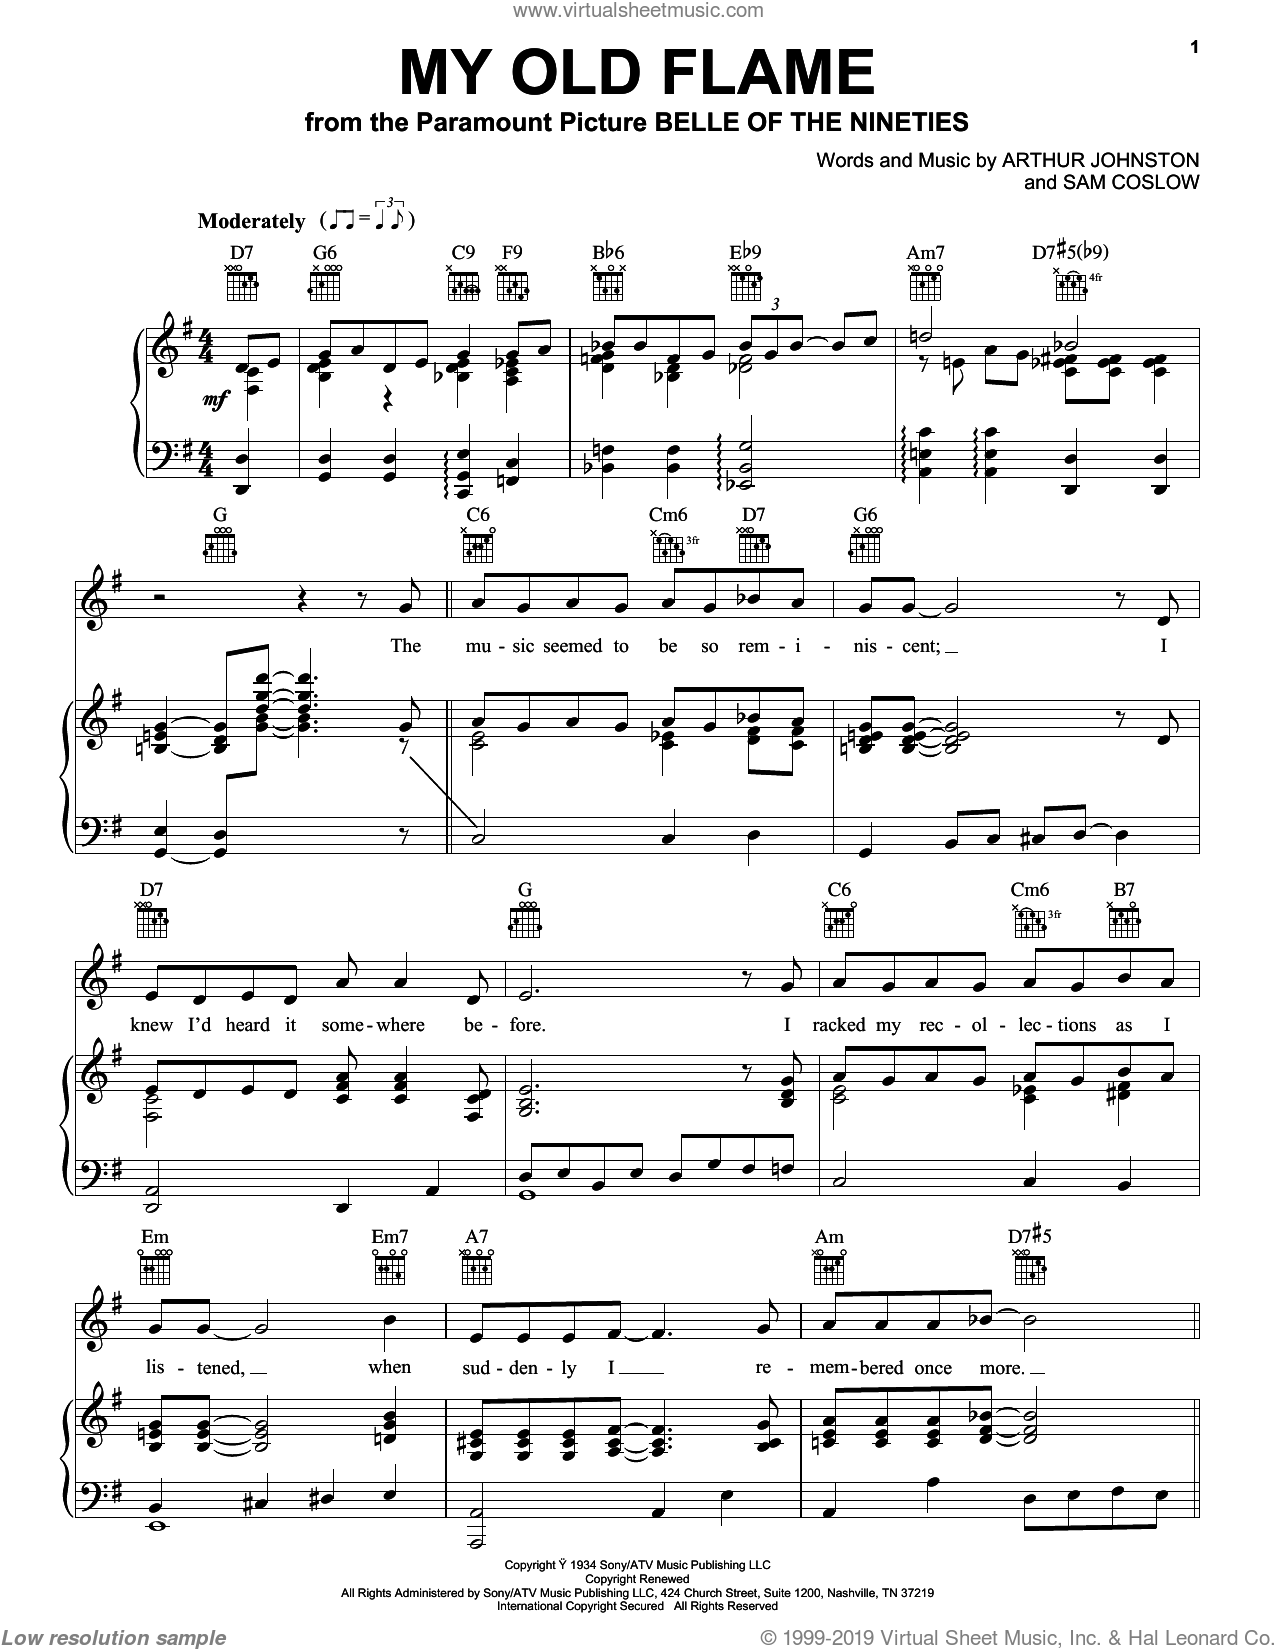 My Old Flame sheet music for voice, piano or guitar by Sam Coslow